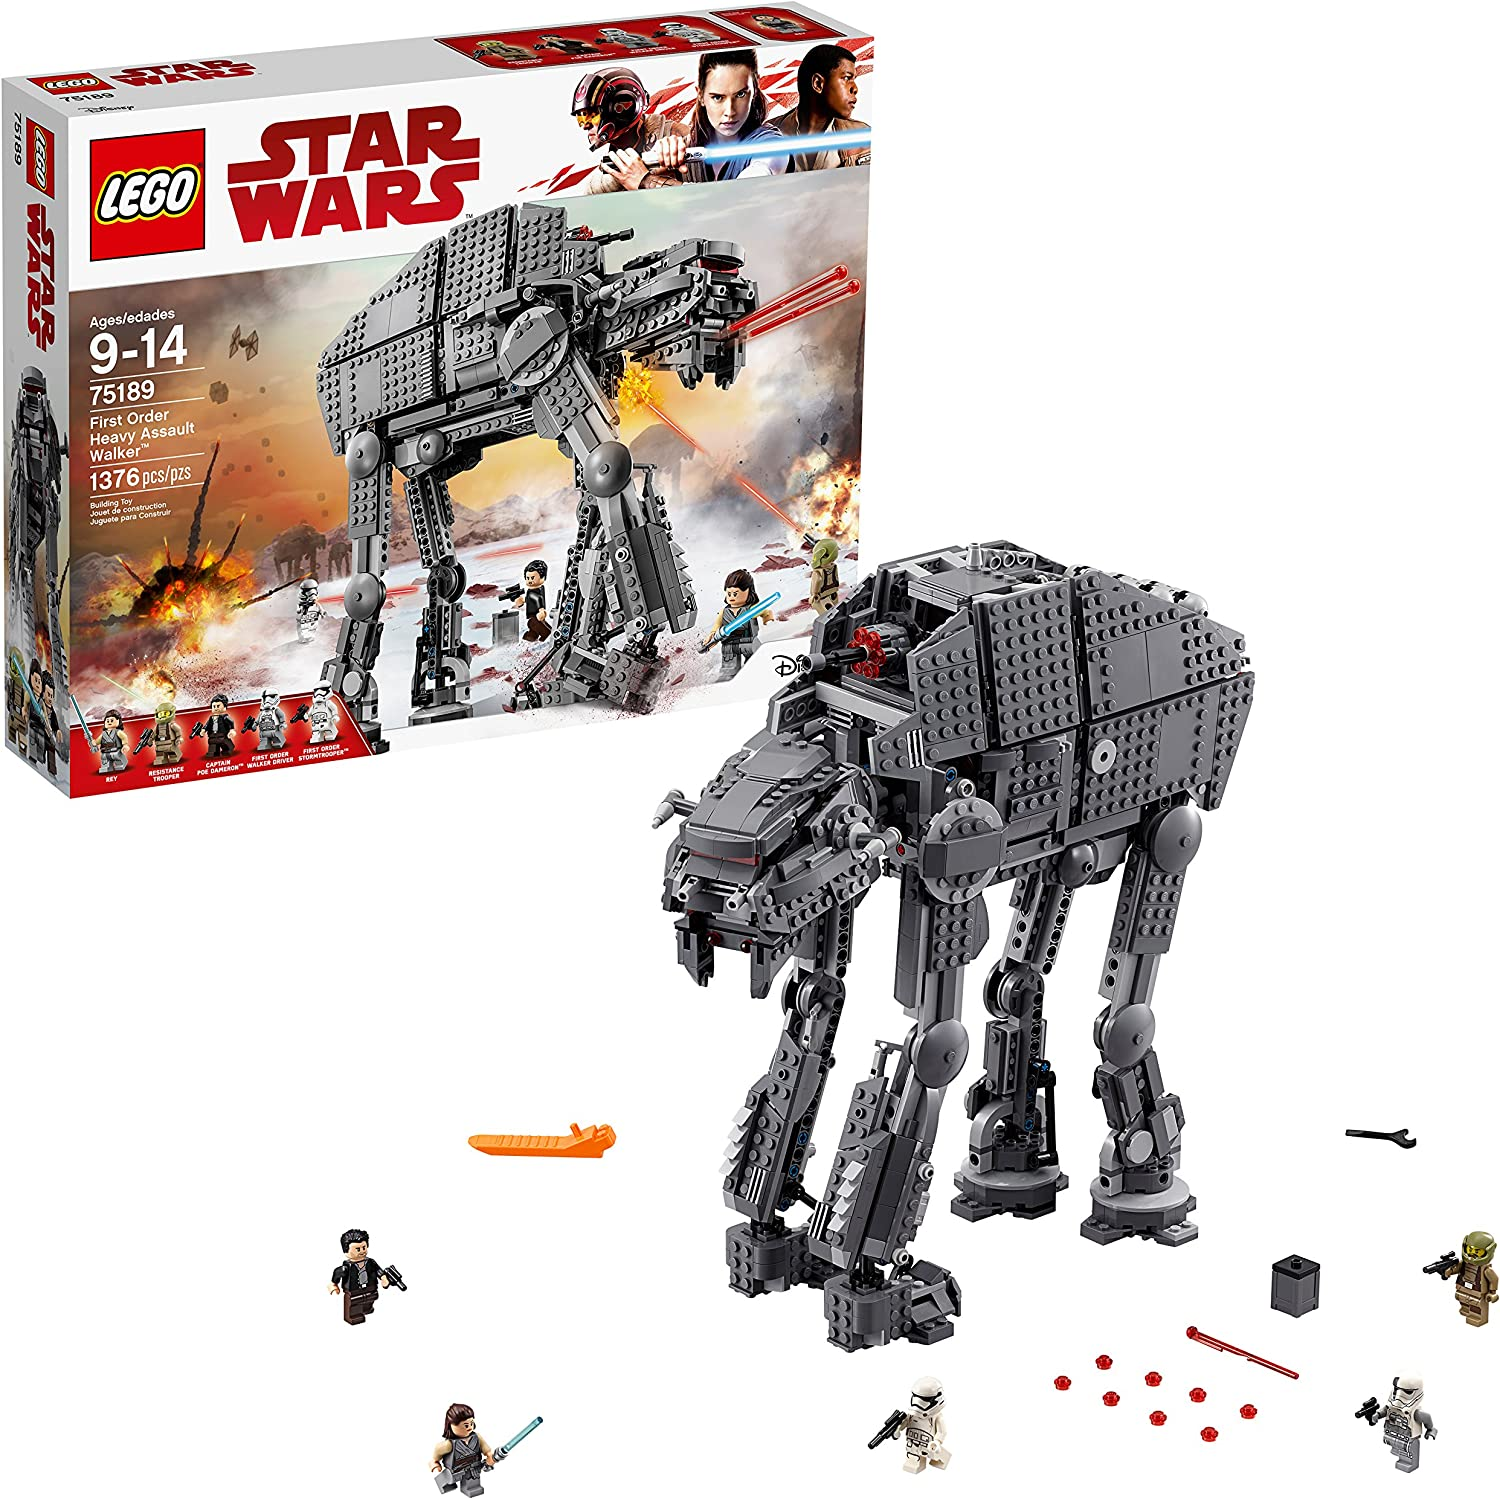 LEGO Star Wars Episode VIII First Order Heavy Assault Walker 75189 Building Kit (1376 Piece)